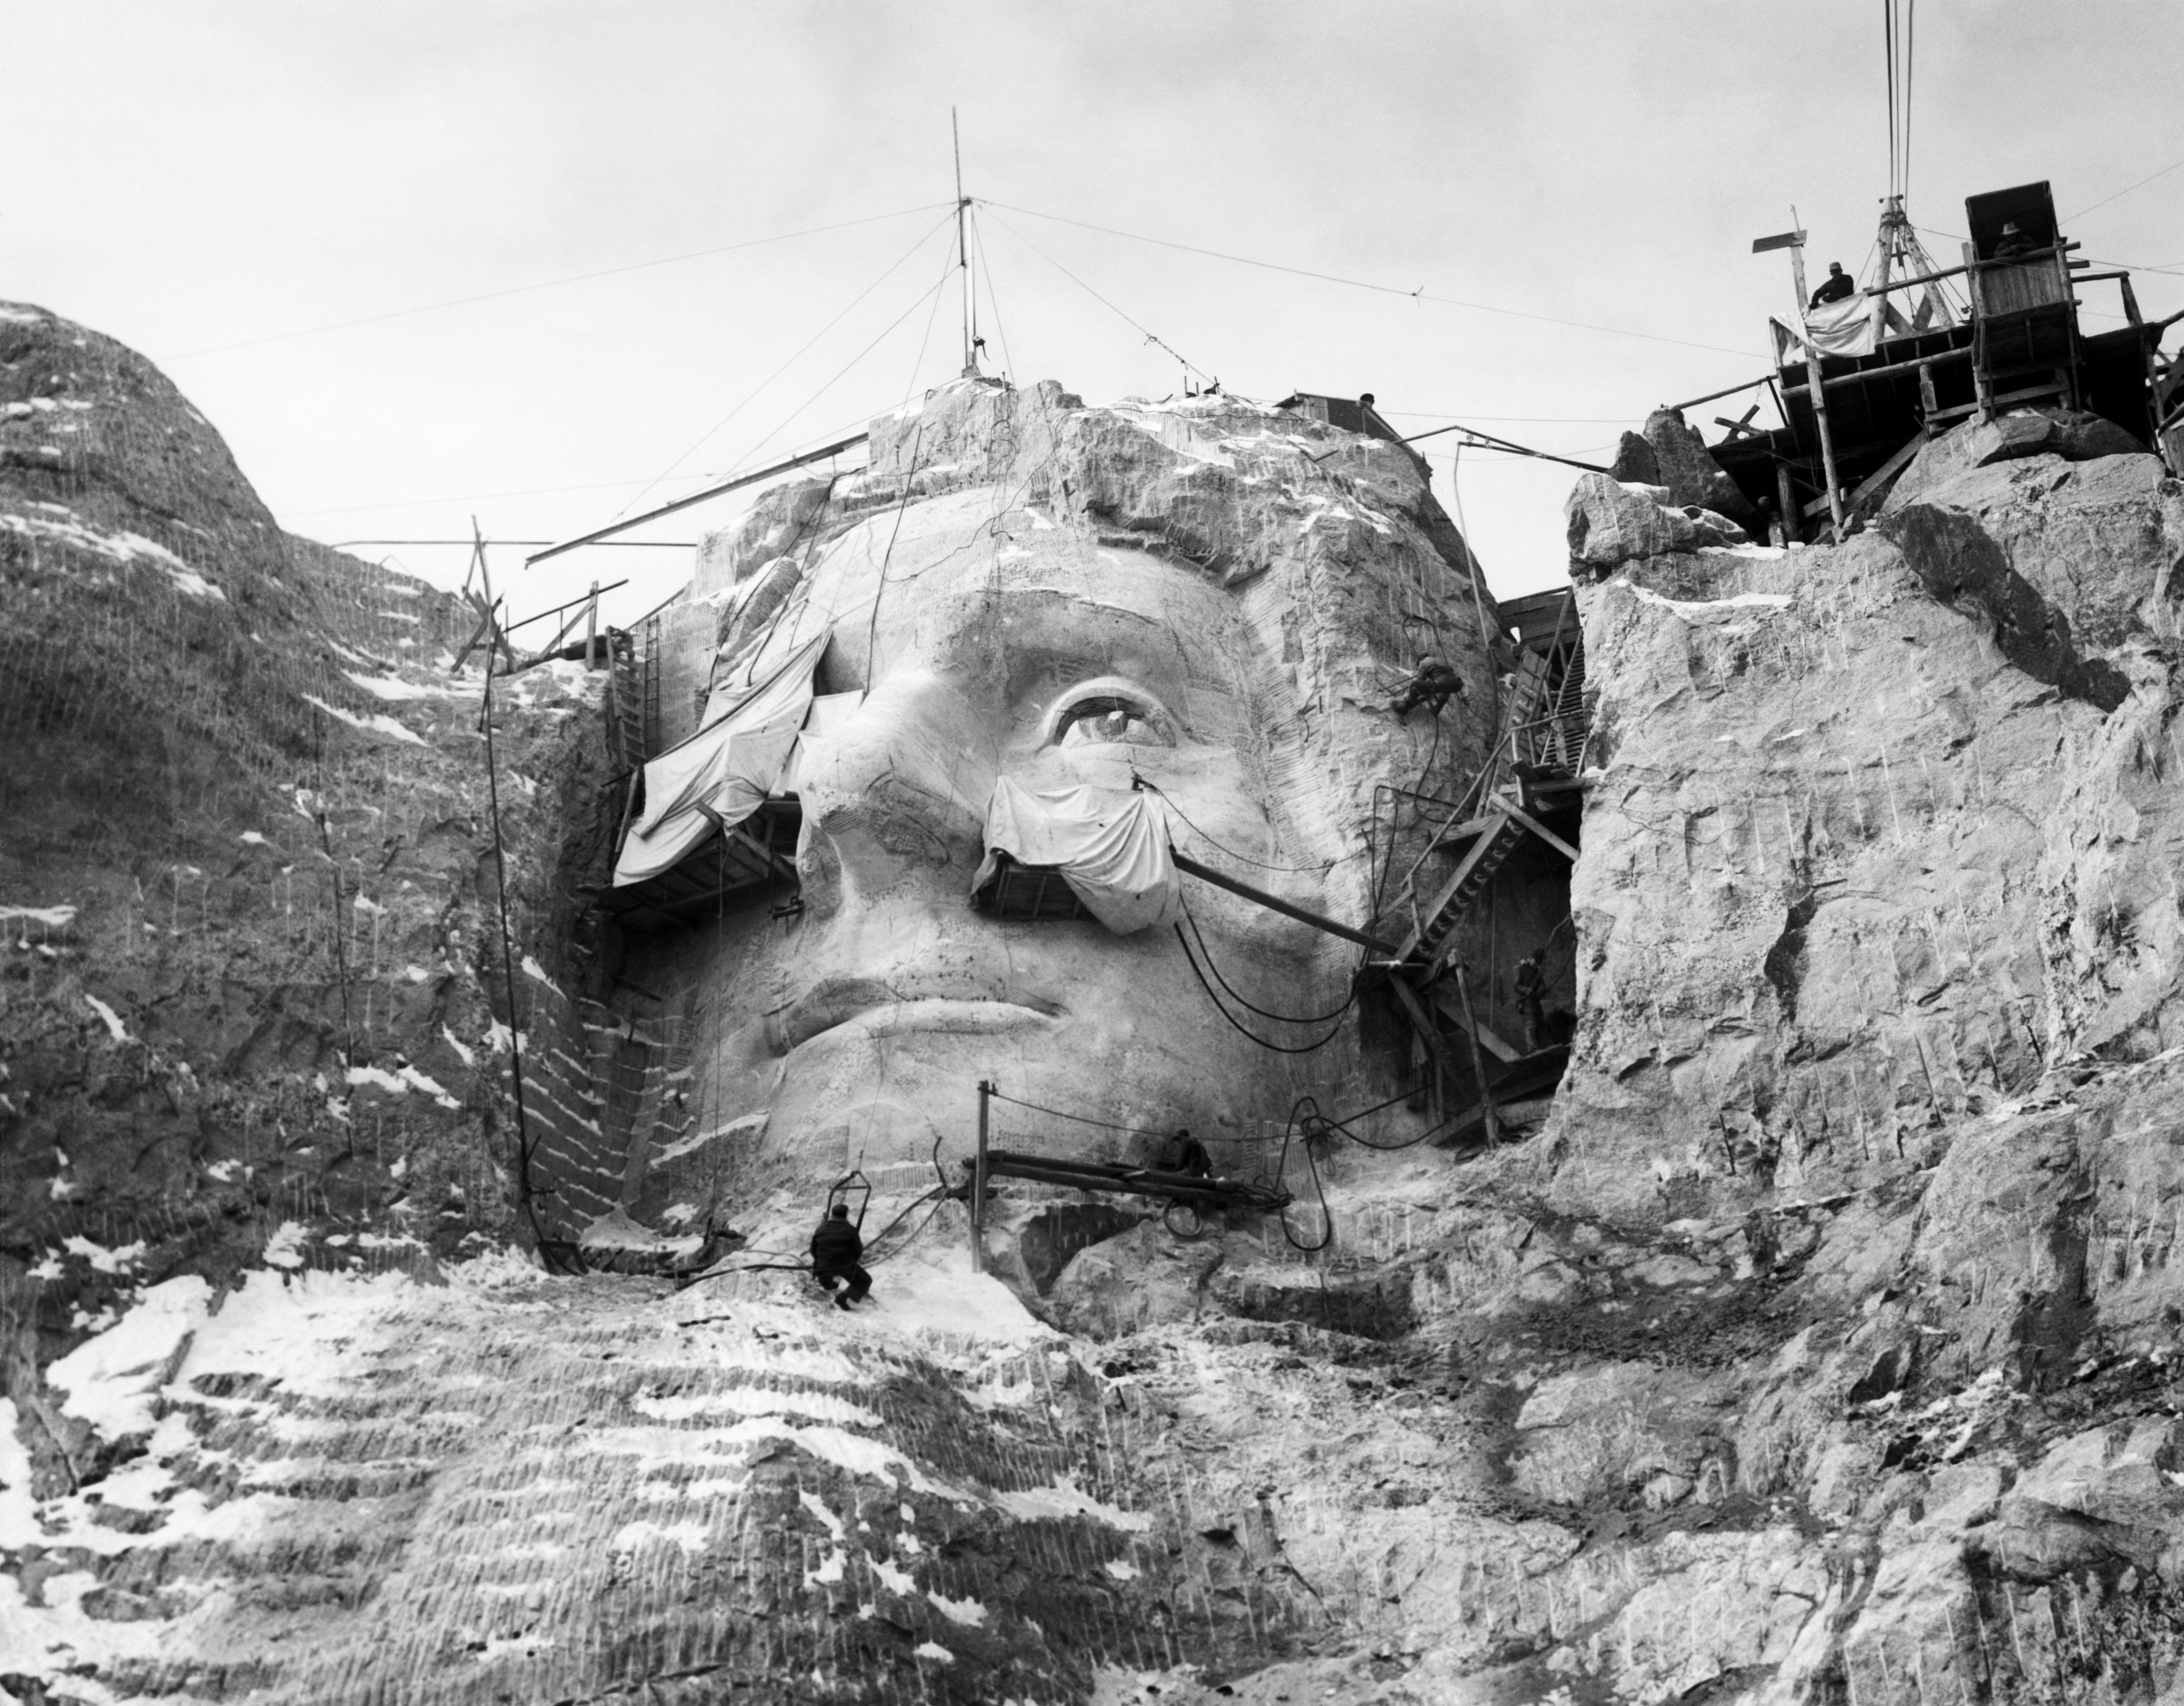 Stone carvers on scaffolding carve the face of Thomas Jefferson into Mount Rushmore in the Black Hills area of Keystone, S.D. in 1930.